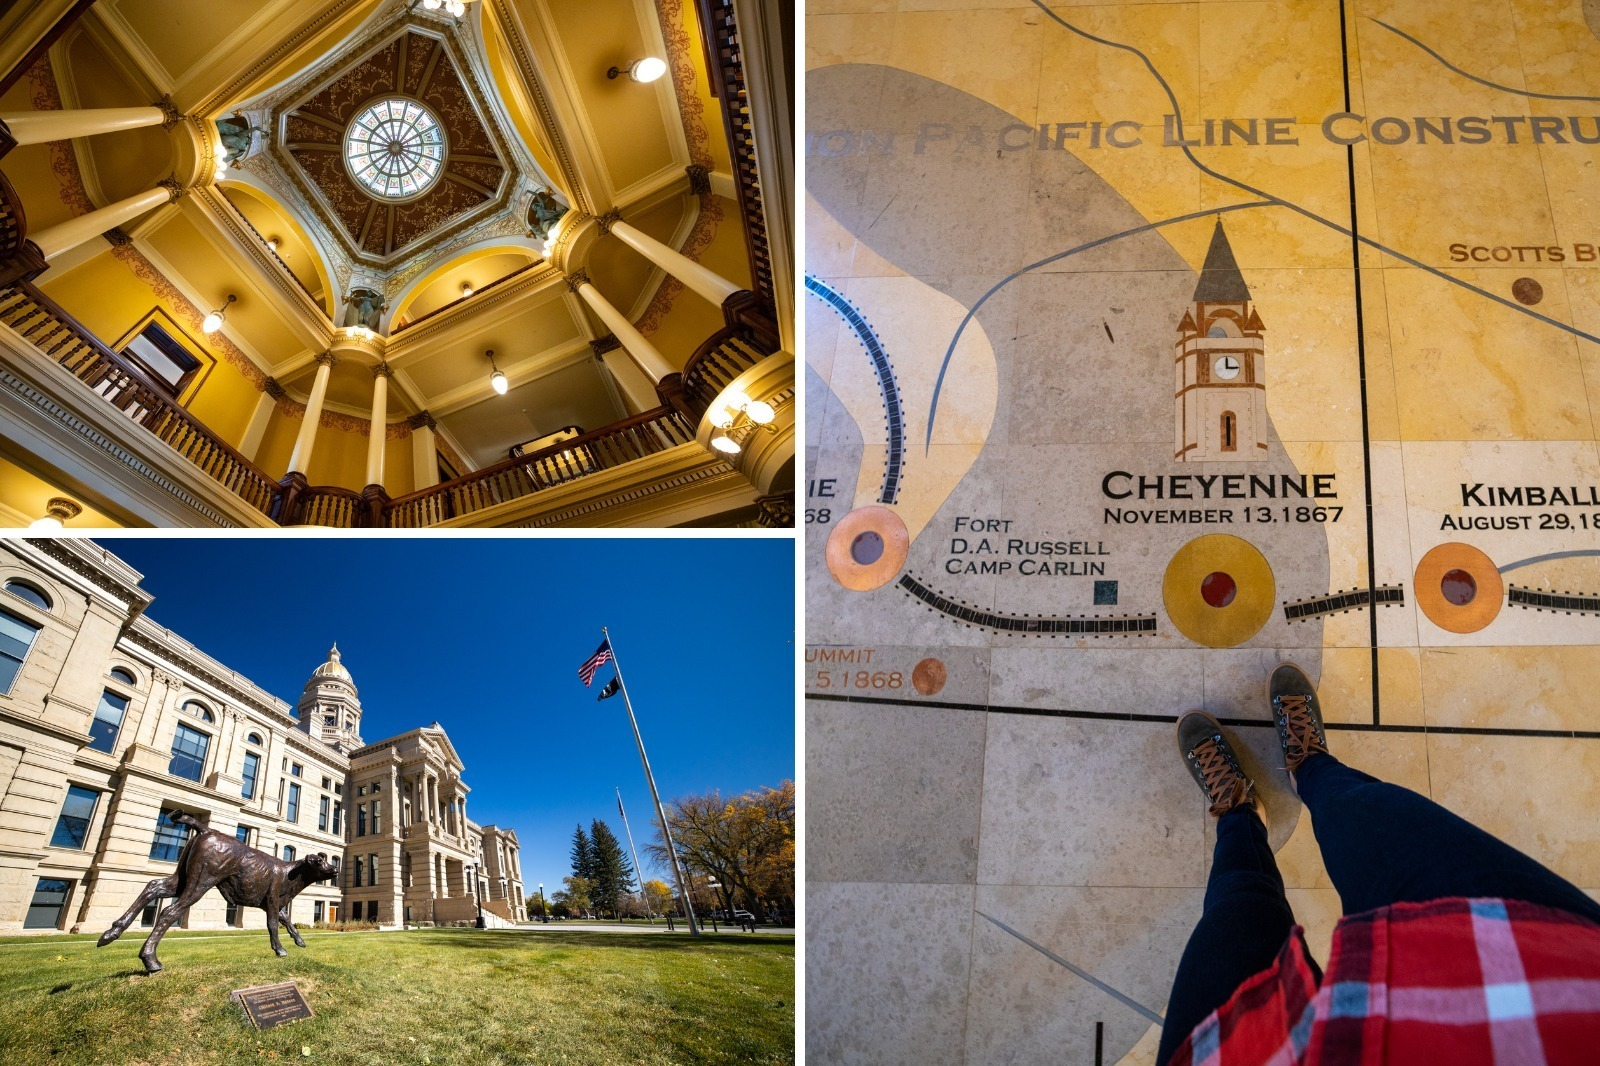 Museums and history of Cheyenne